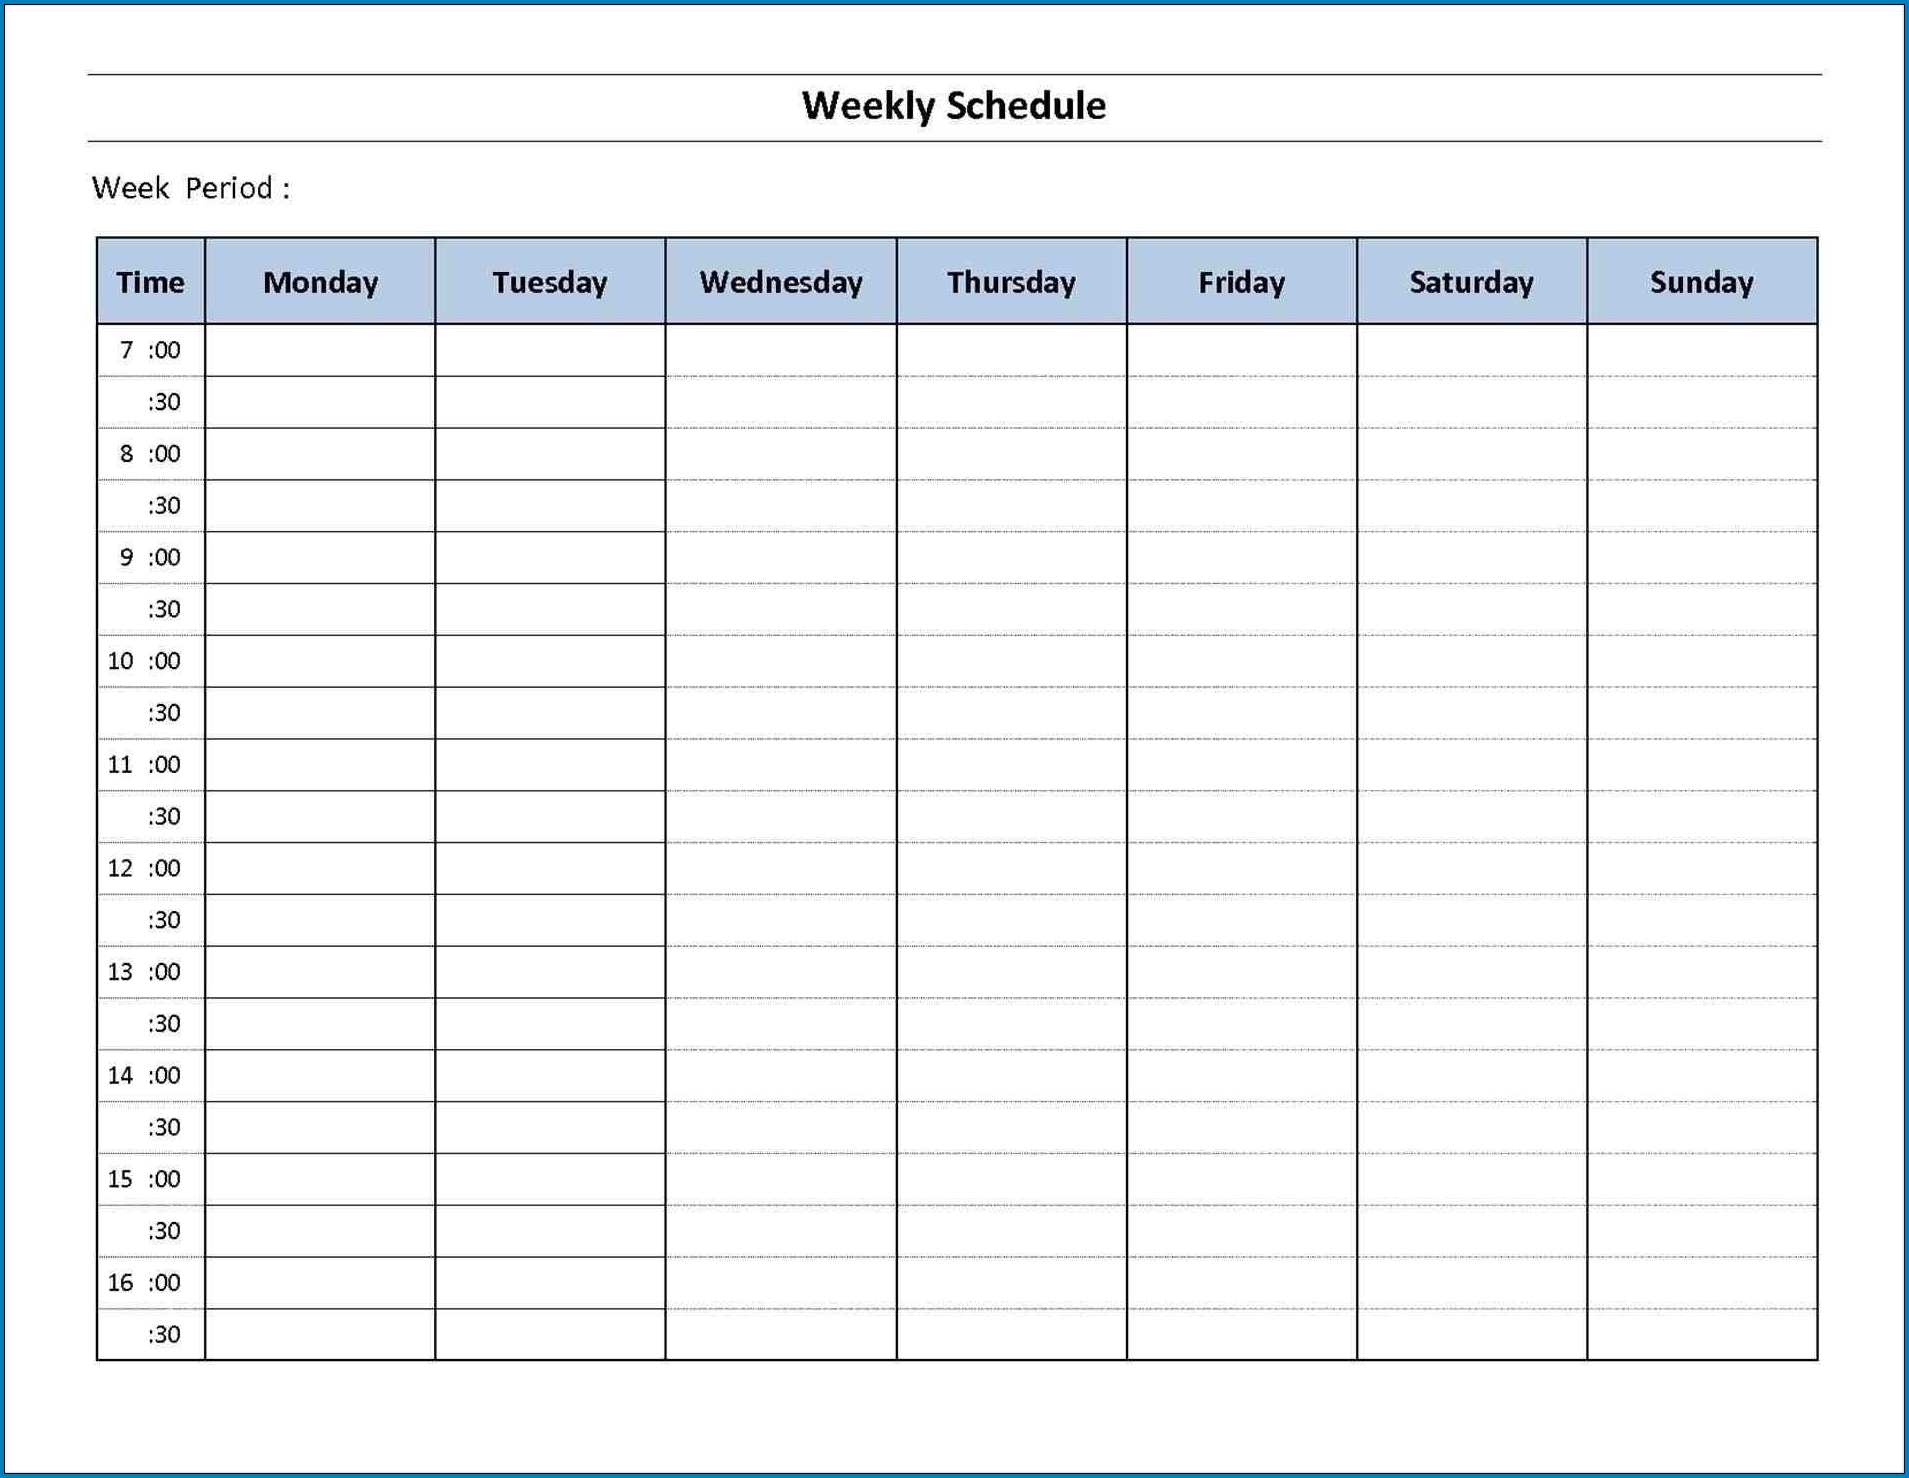 √ Free Printable 7 Day Schedule Template | Templateral-Blank 7 Day Calendar Template